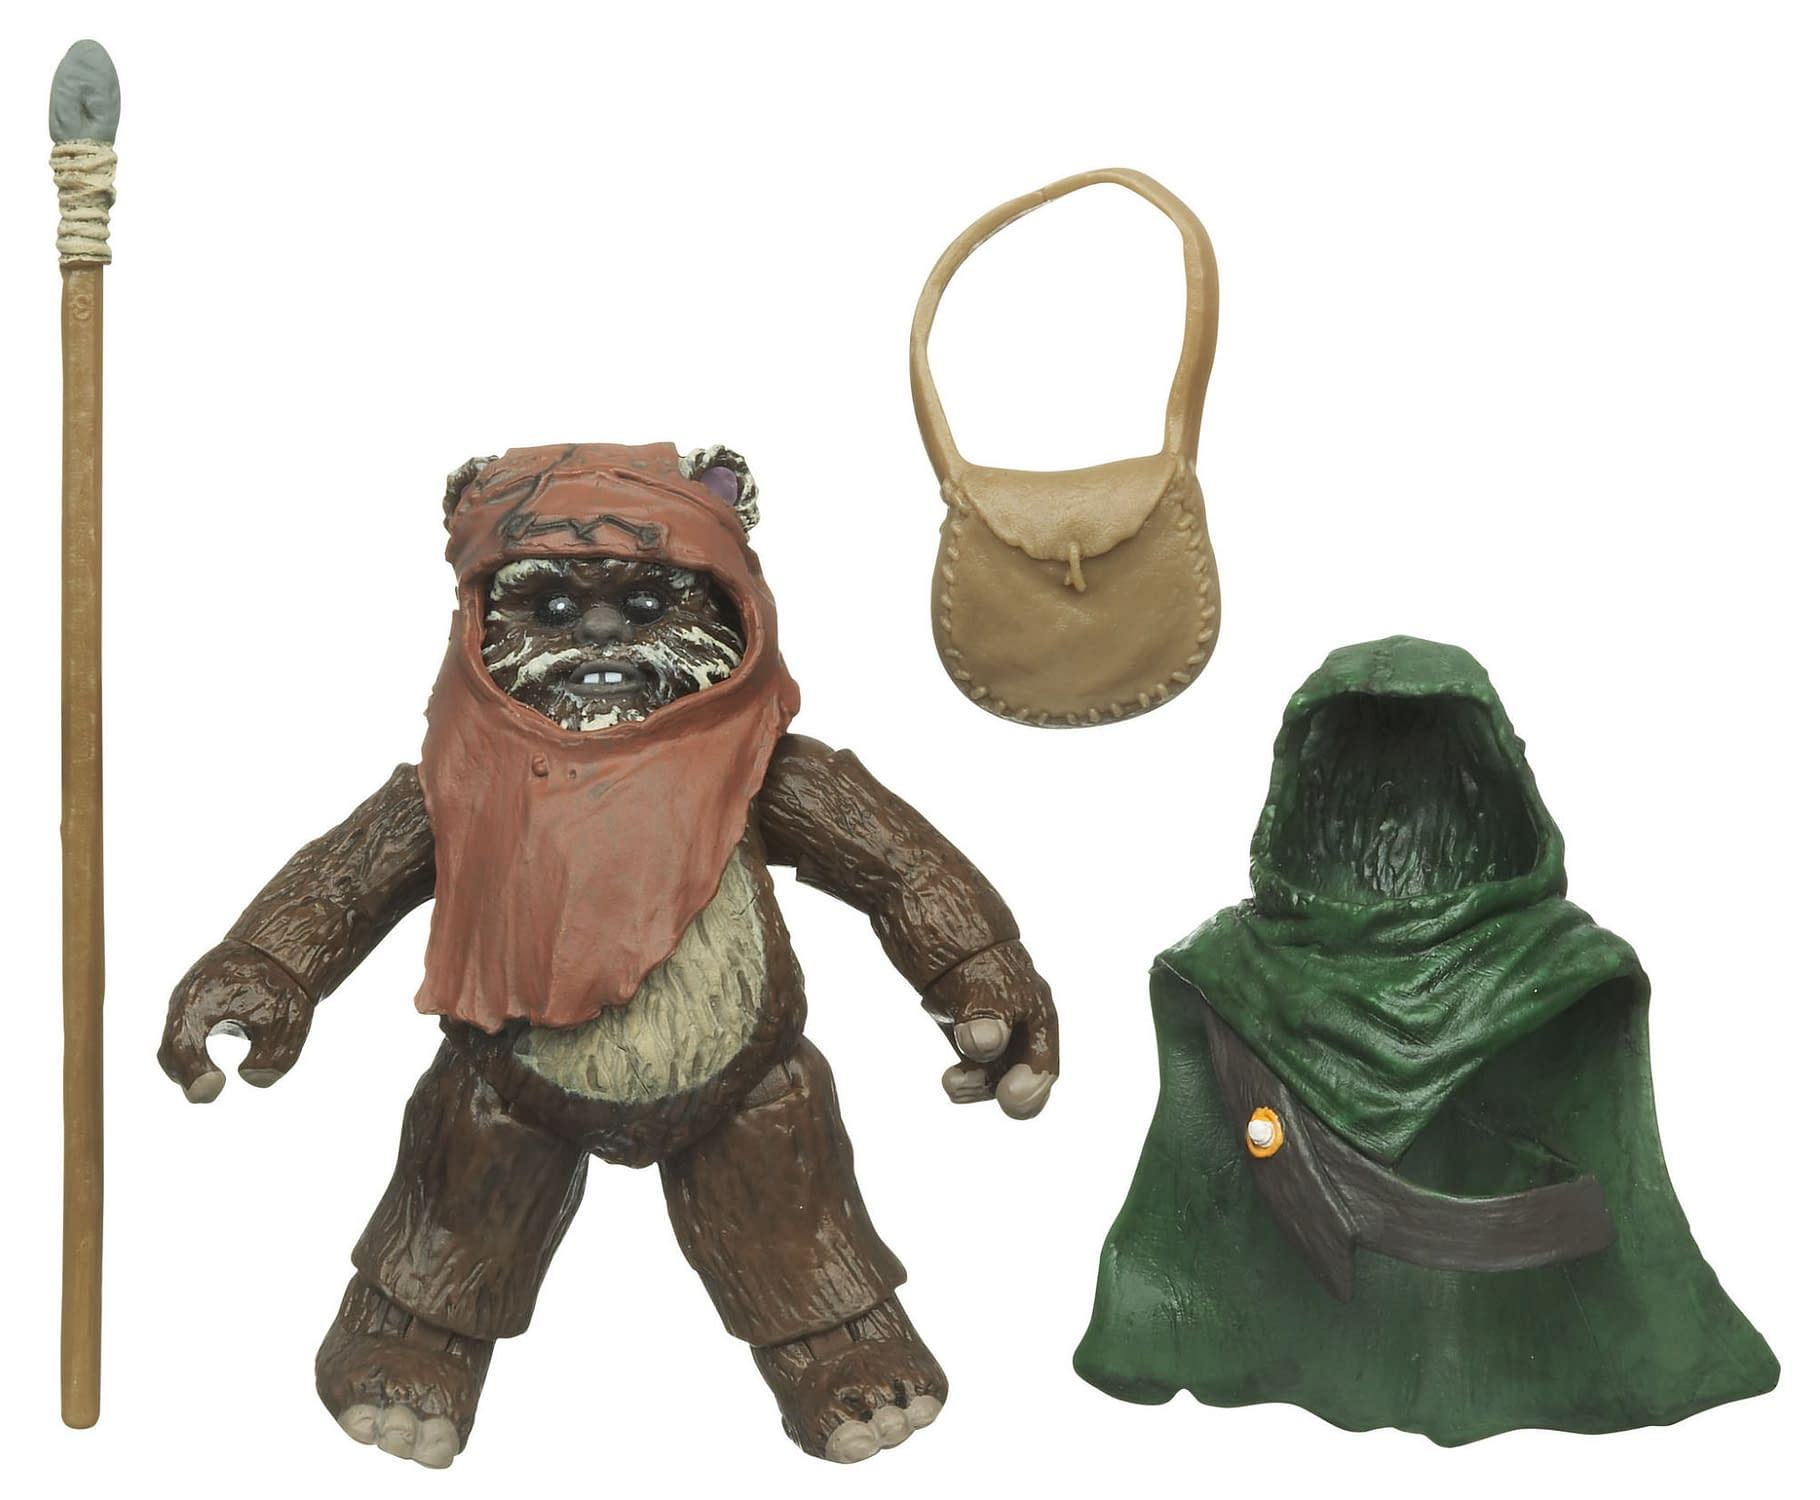 New Star Wars Barcelona Releases Reveal a